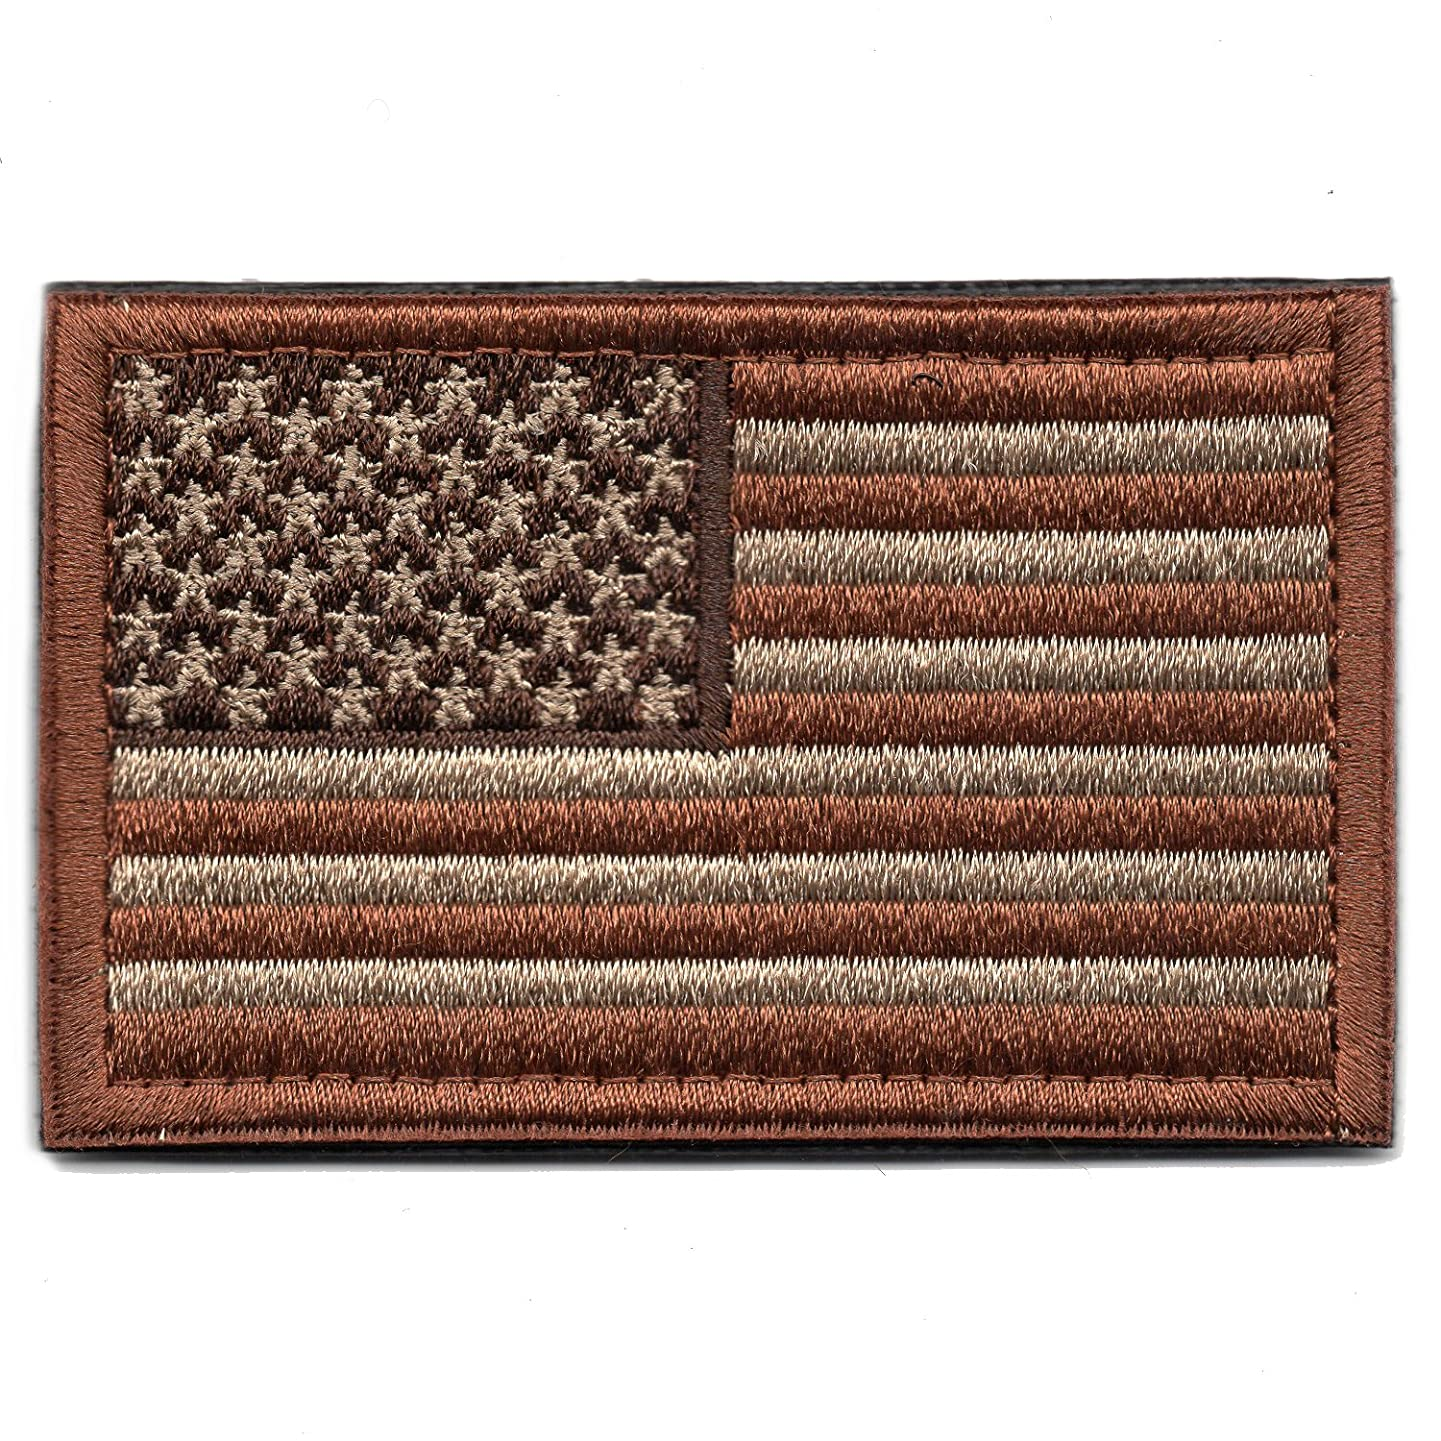 Tactical American Flag Patch Embroidered Military Uniform Emblem with Hook and Loop (Desert Coyote)